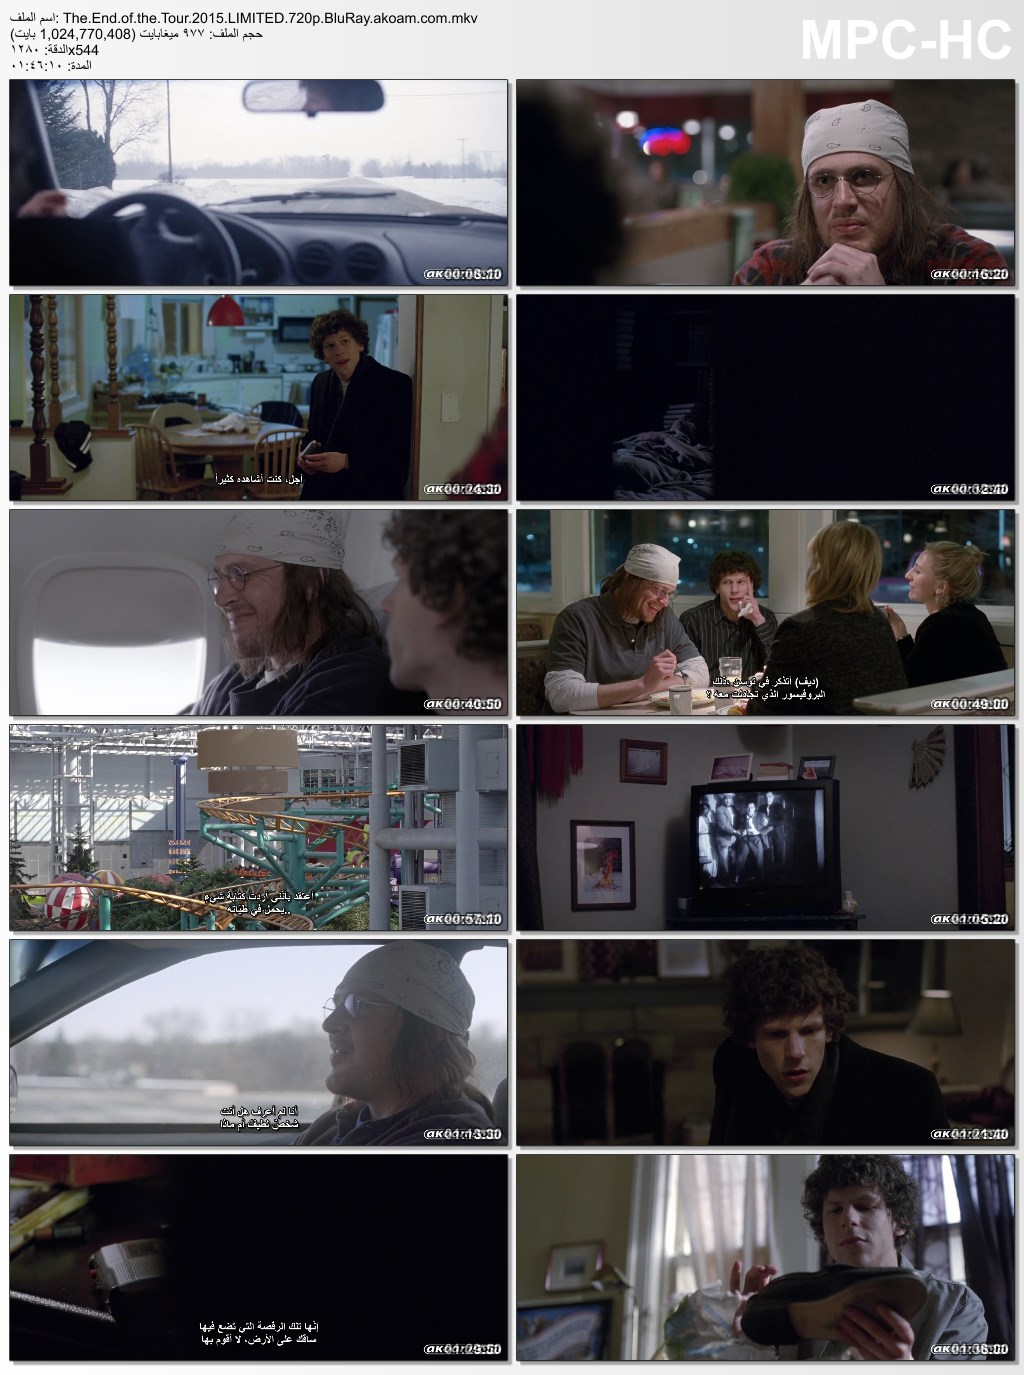 The End of the Tour,The End of the Tour 2015,الدراما,البلوراي